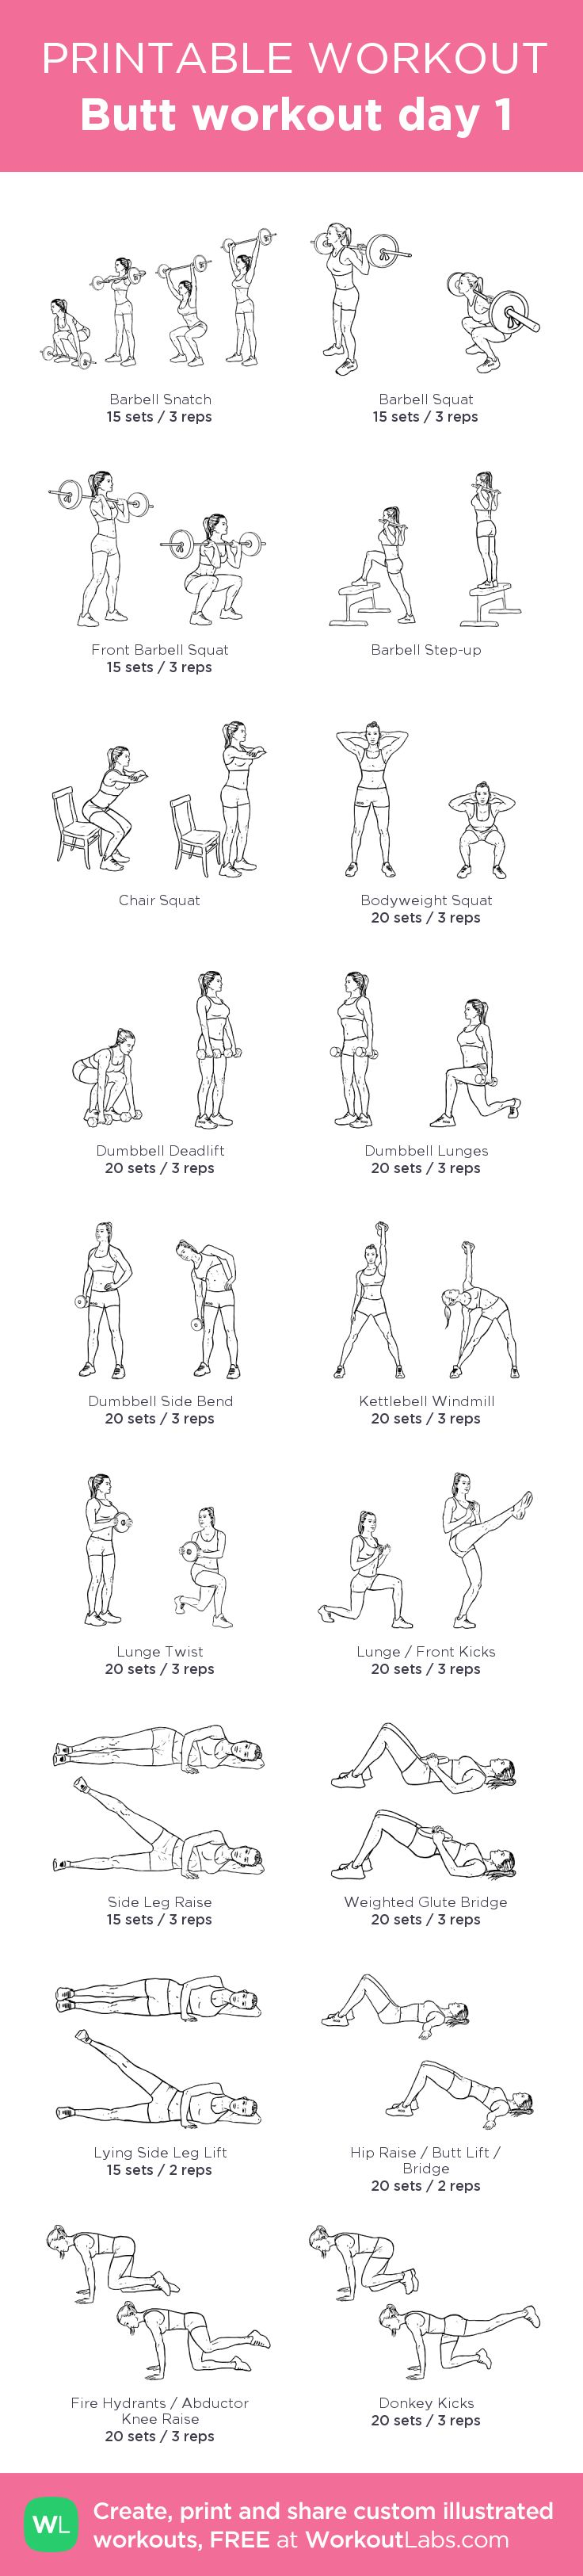 Butt workout day 1: my visual workout created at WorkoutLabs.com • Click through to customize and download as a FREE PDF! #customworkout